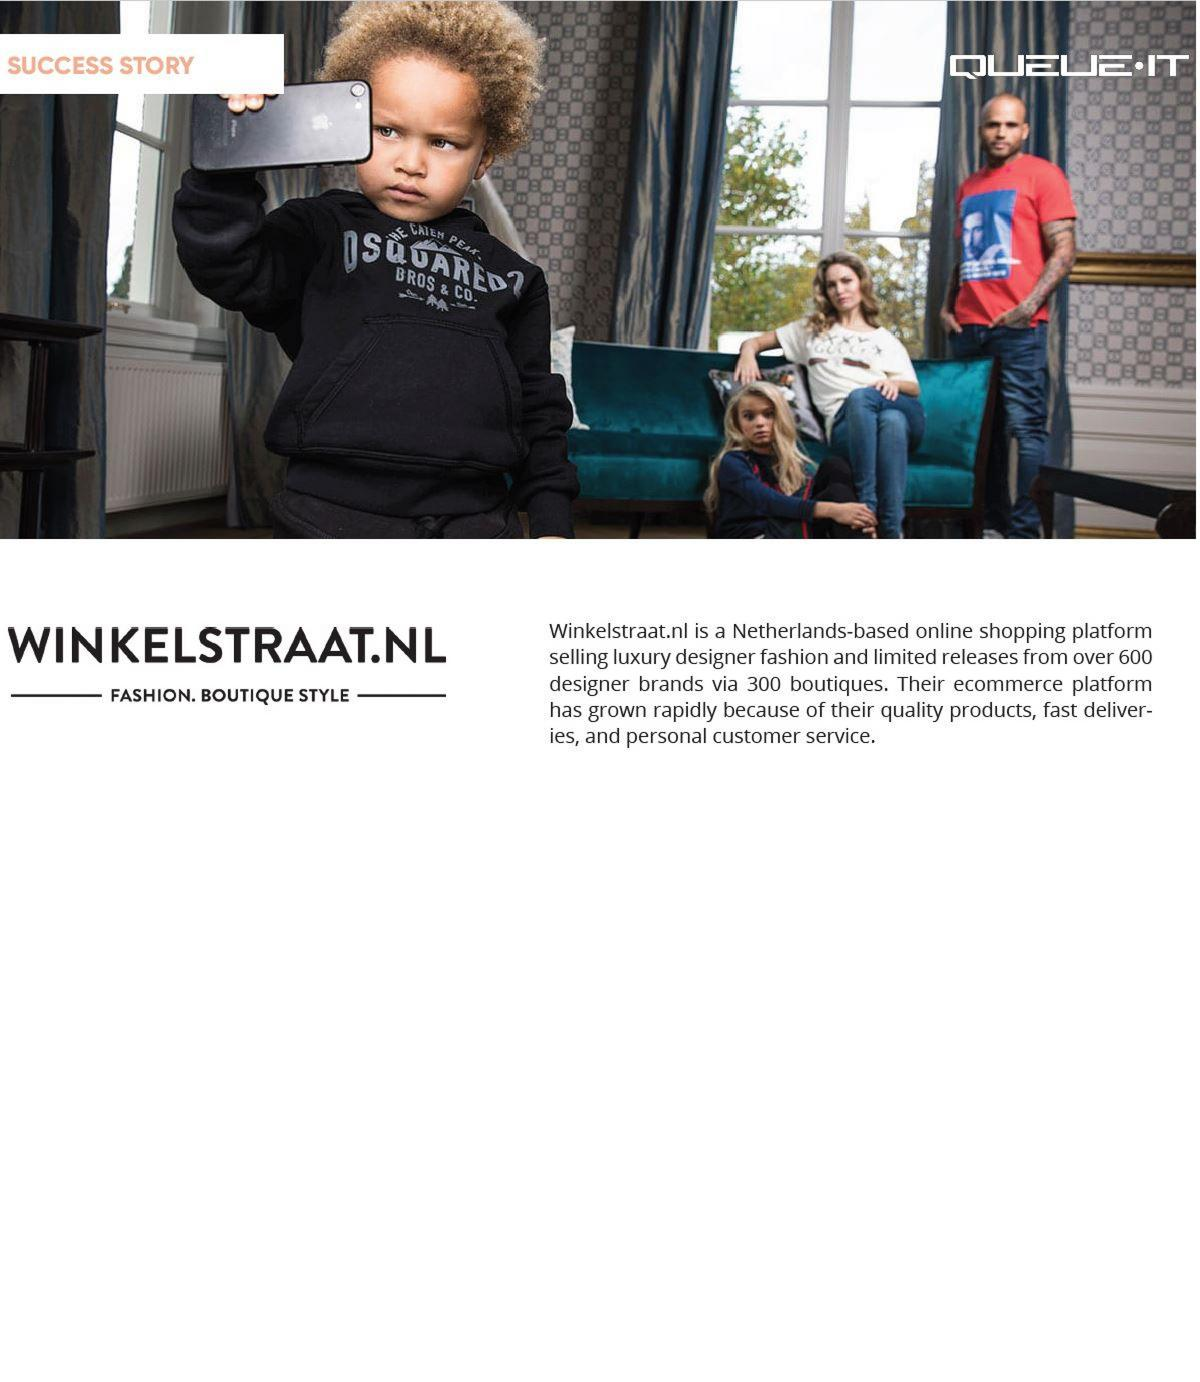 Winkelstraat success story